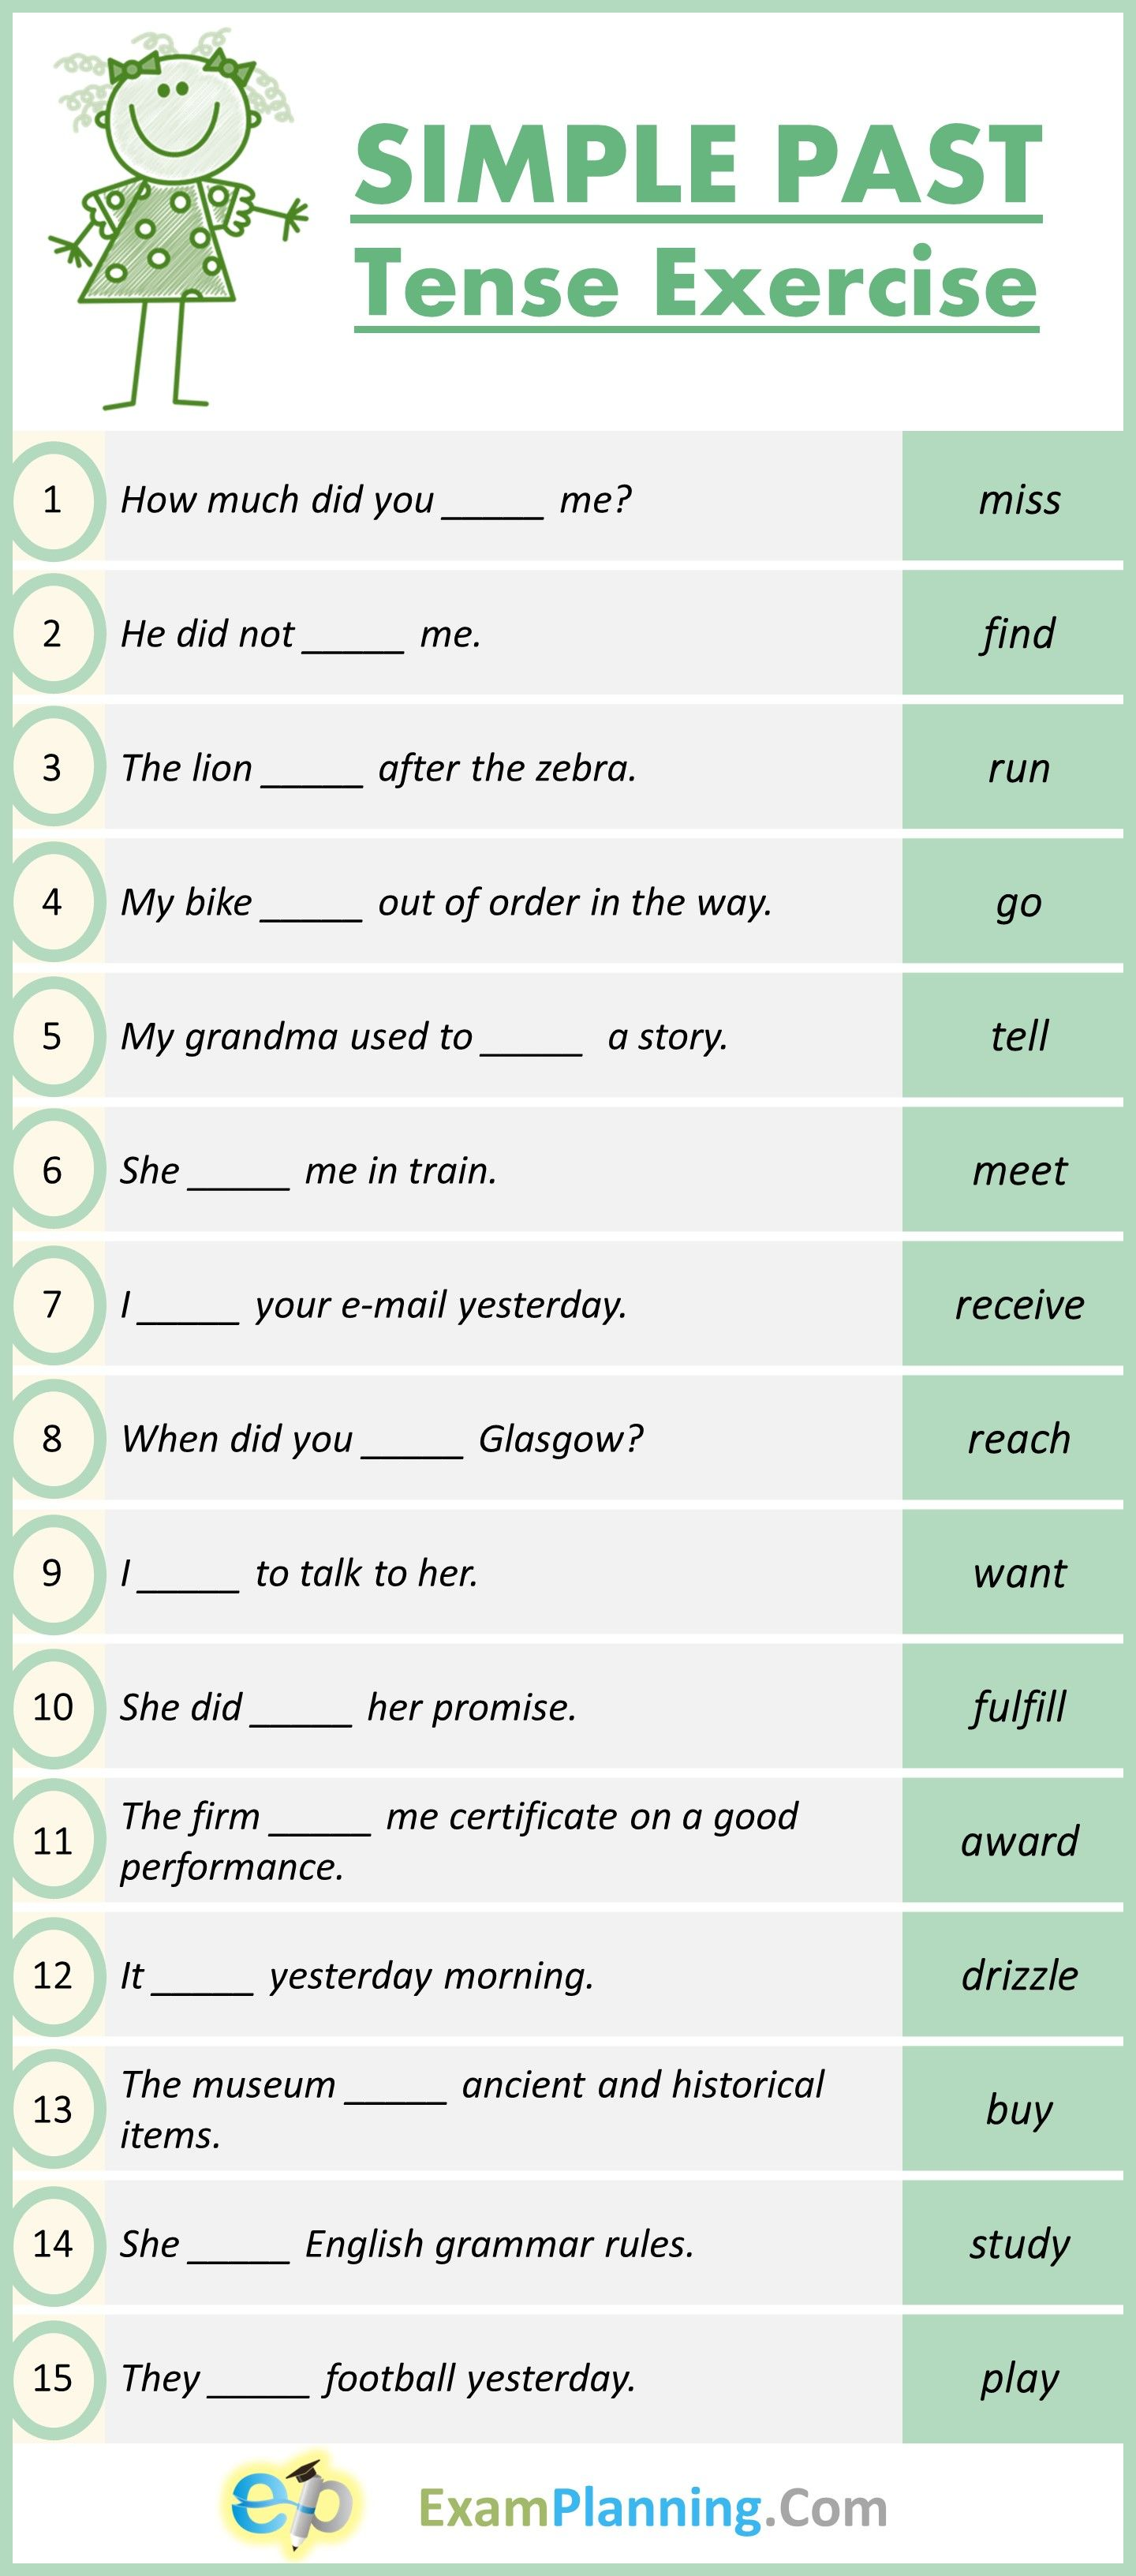 Simple Past Tense Exercises With Images